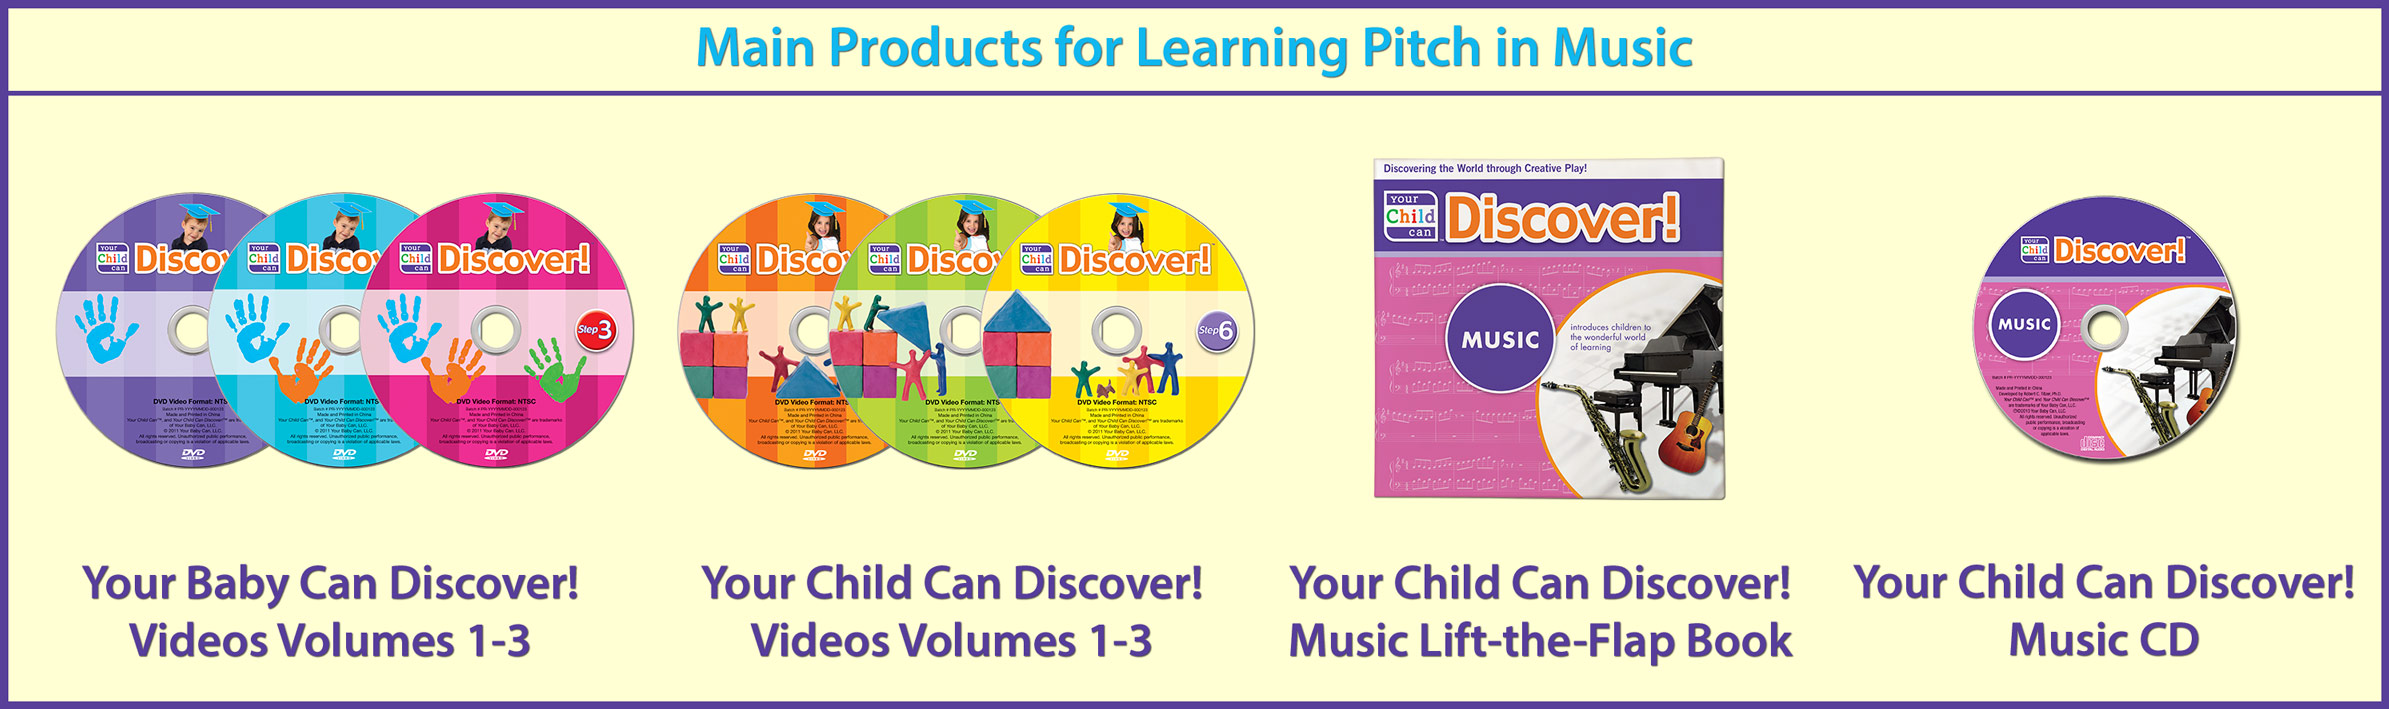 Main Products for Learning Pitch in Music